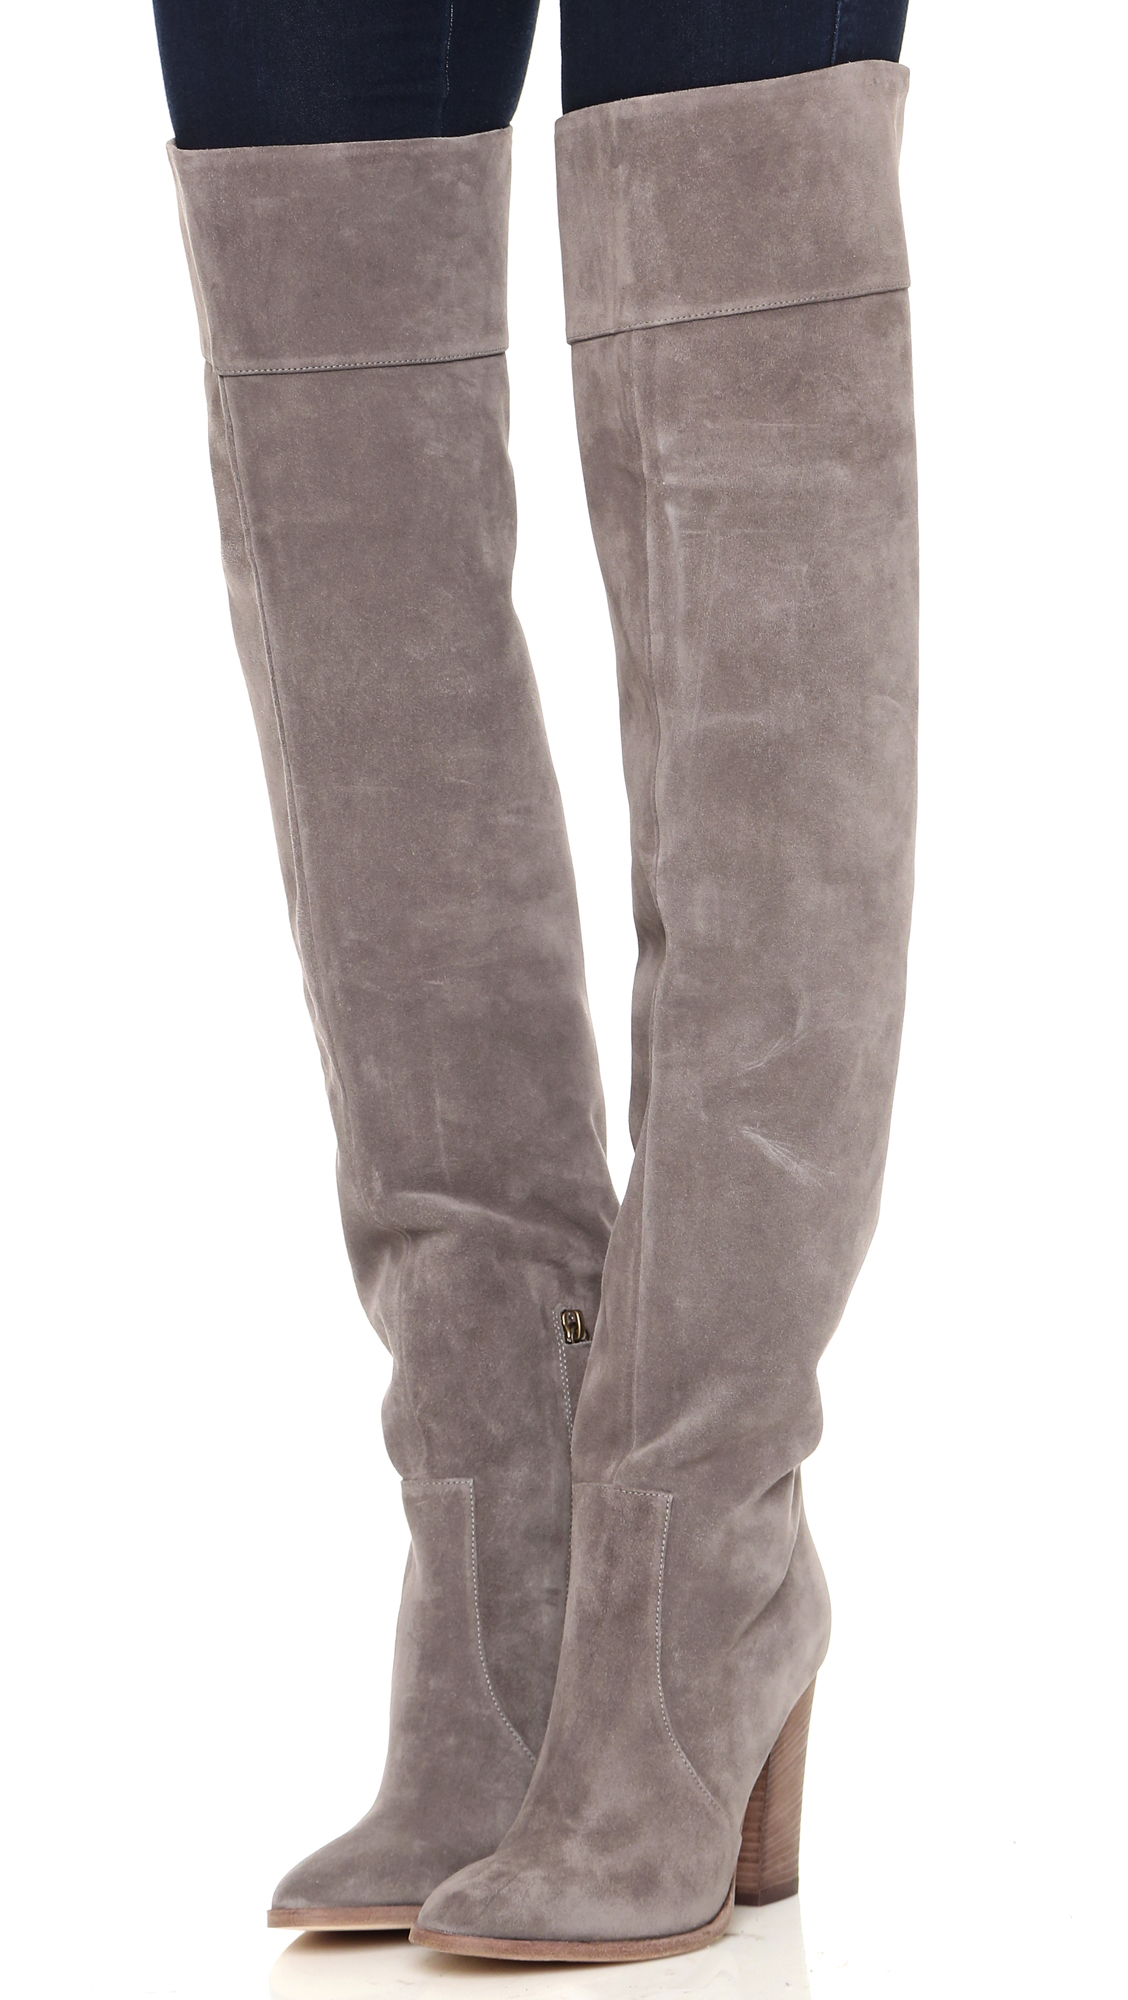 club-monaco-grey-lisa-over-the-knee-suede-boots-grey-gray-product-3-040641555-normal.jpeg